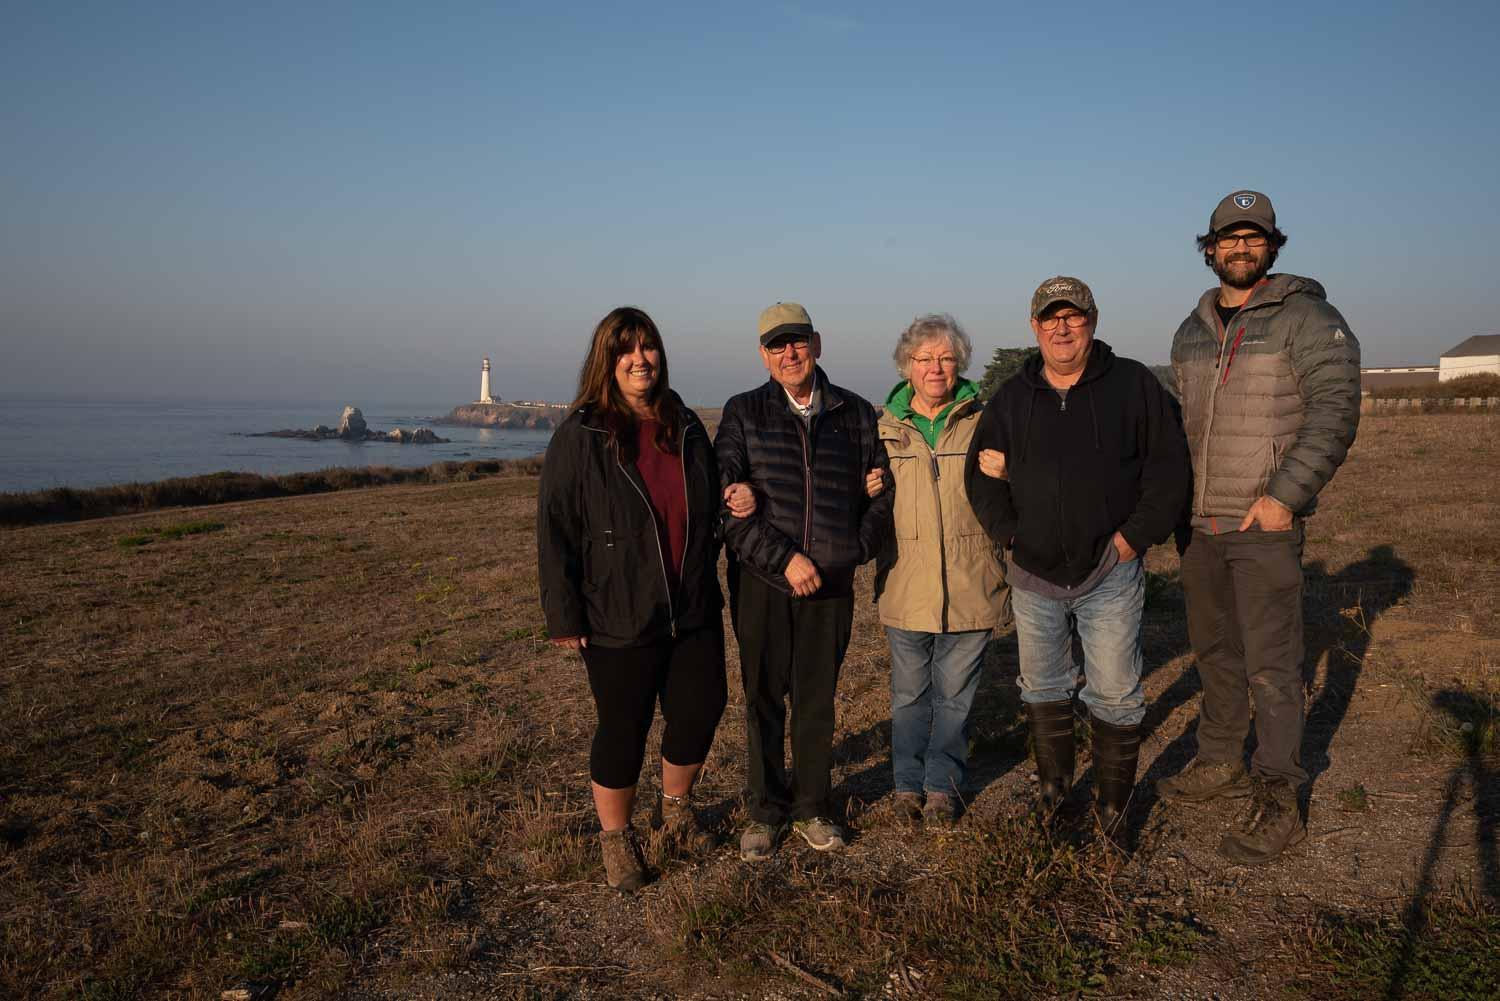 photographers pose for group photo with lighthouse along coast